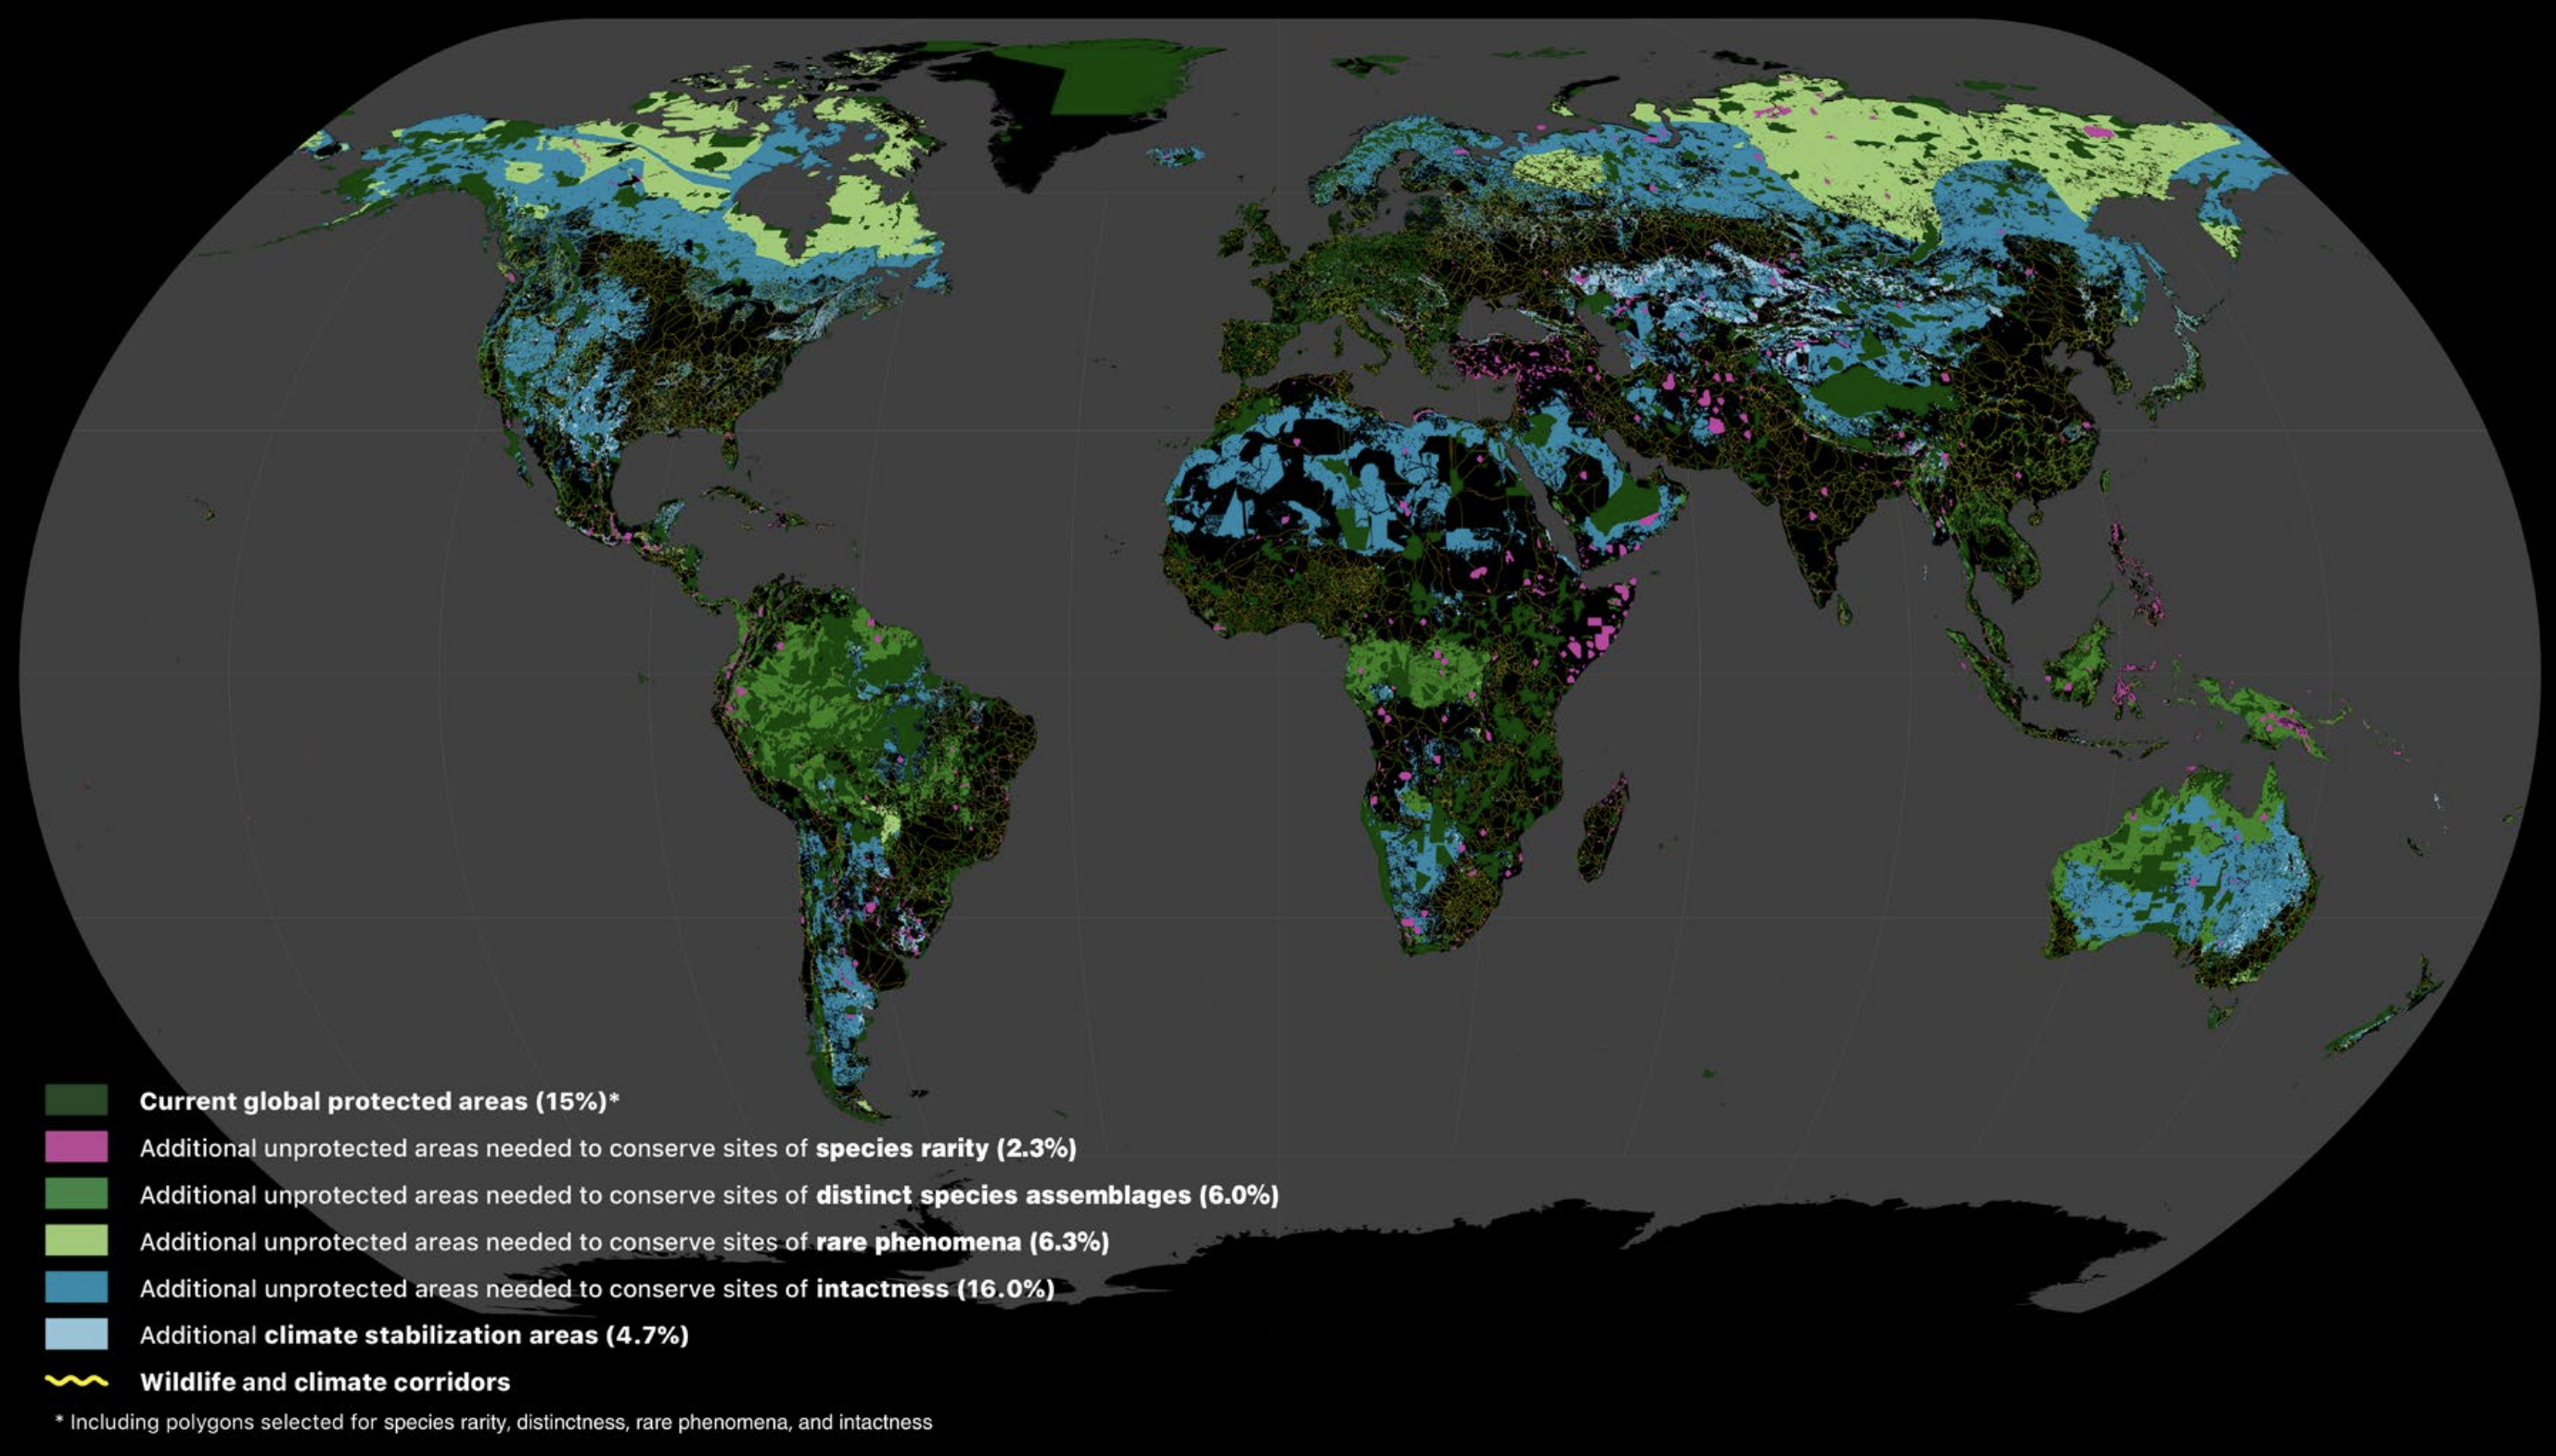 Areas of the terrestrial realm where increased conservation action is needed to protect biodiversity and store carbon. Numbers in parentheses show the percentage of total land area of Earth contributed by each set of layers. Unprotected habitats drawn from the 11 biodiversity data layers underpinning the Global Safety Net augment the current 15.1% protected with an additional 30.6% required to safeguard biodiversity. Additional CSAs add a further 4.7% of the terrestrial realm. Also shown are the wildlife and climate corridors to connect intact habitats (yellow lines). Data are available for interactive viewing at www.globalsafetynet.app. Image from Dinerstein et al., 2020.